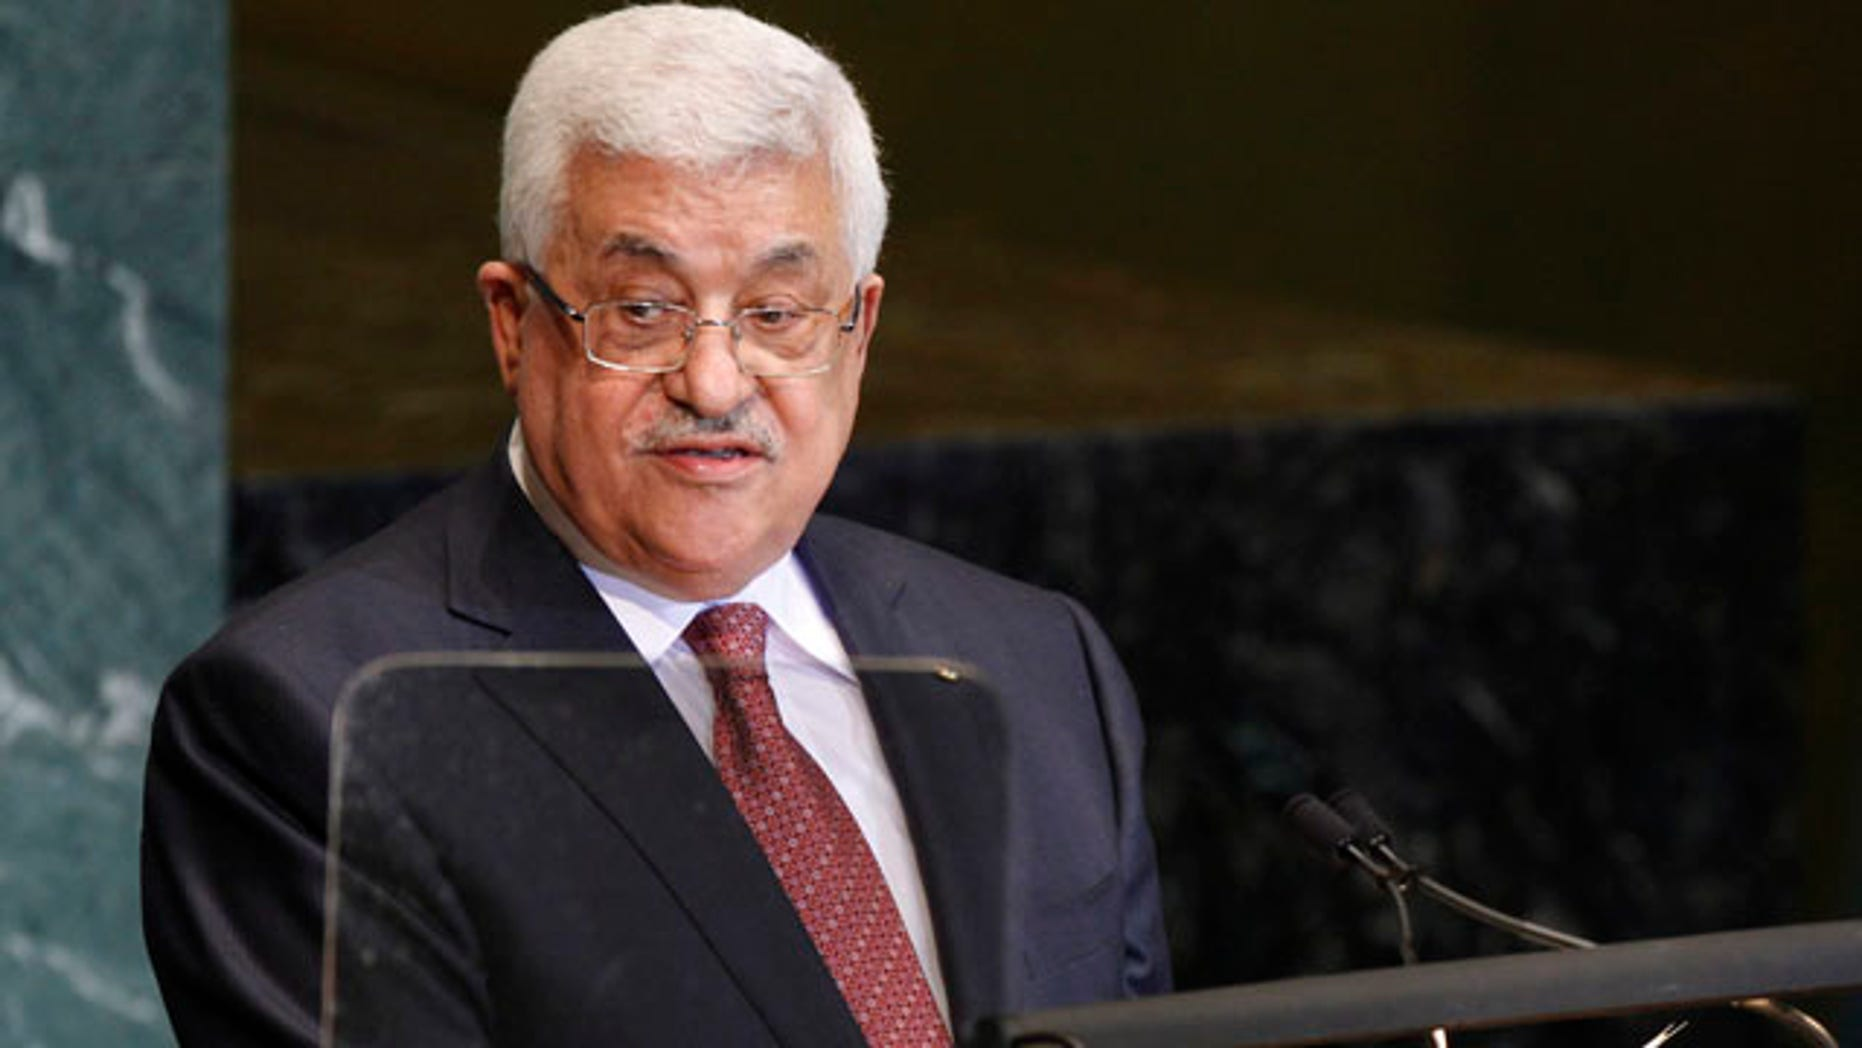 Sept. 25: Mahmoud Abbas, President of the Palestinian Authority, addresses the 65th session of the United Nations General Assembly at United Nations headquarters.